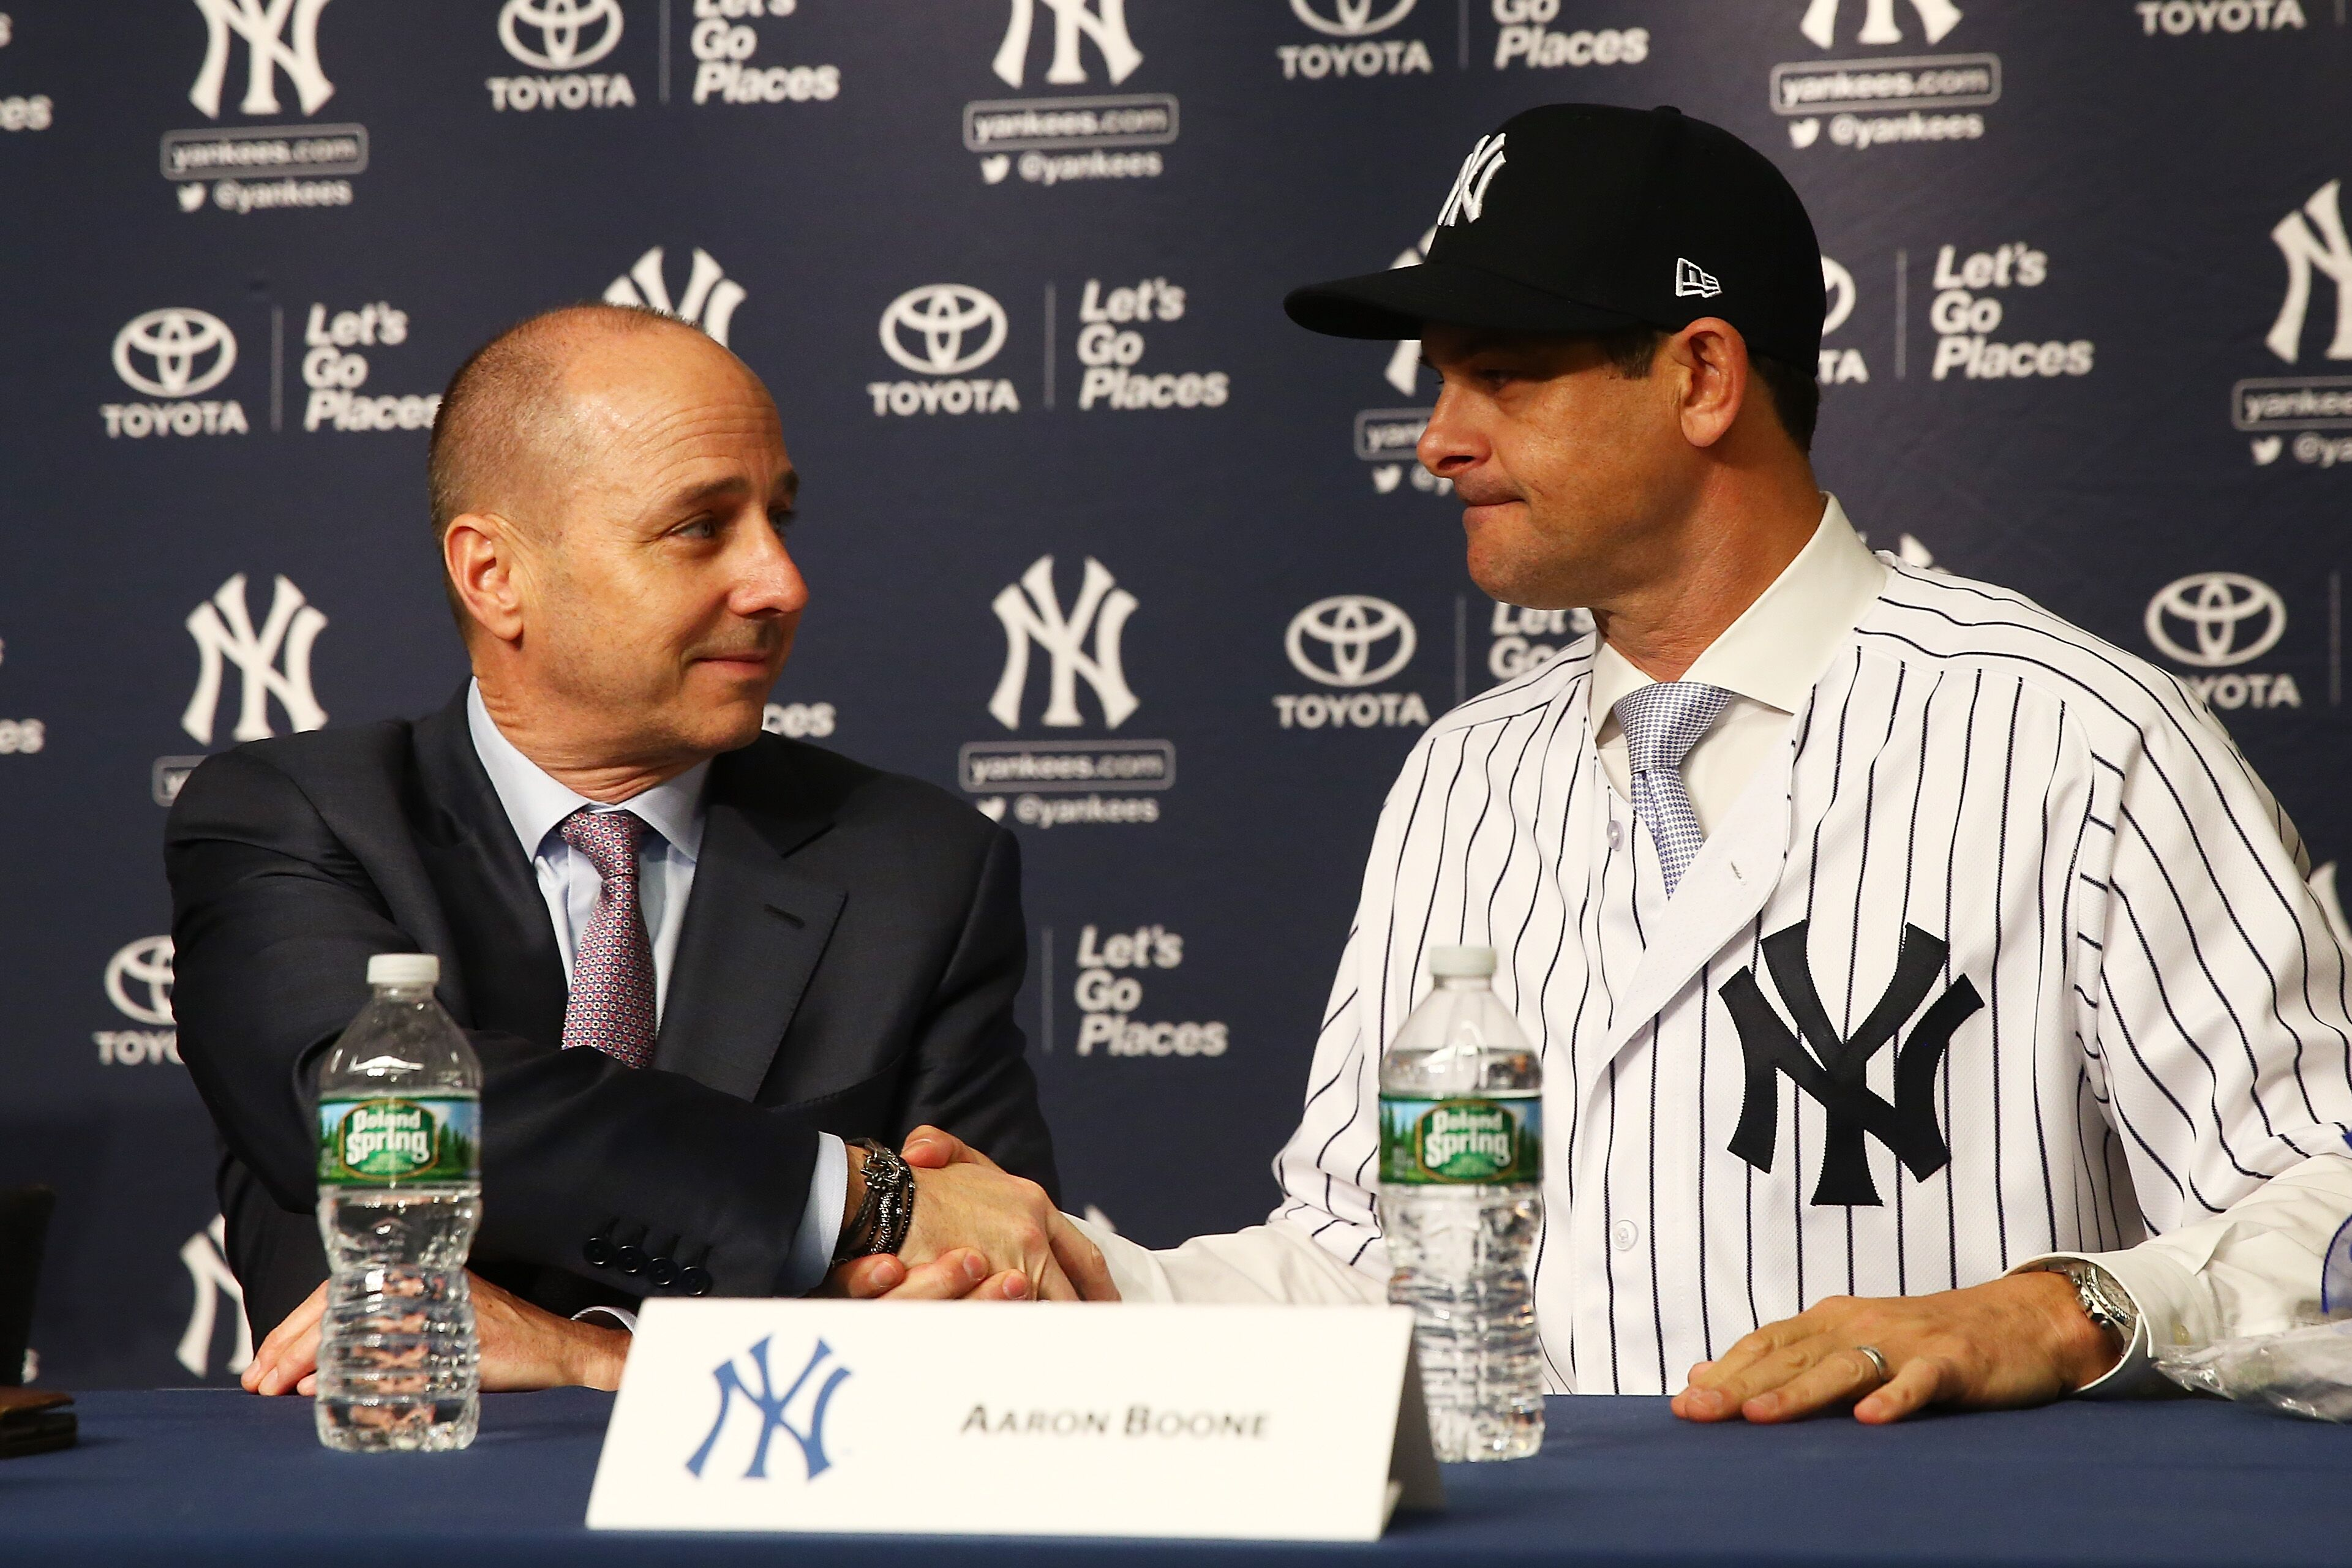 887097830-new-york-yankees-introduce-aaron-boone-as-manager.jpg